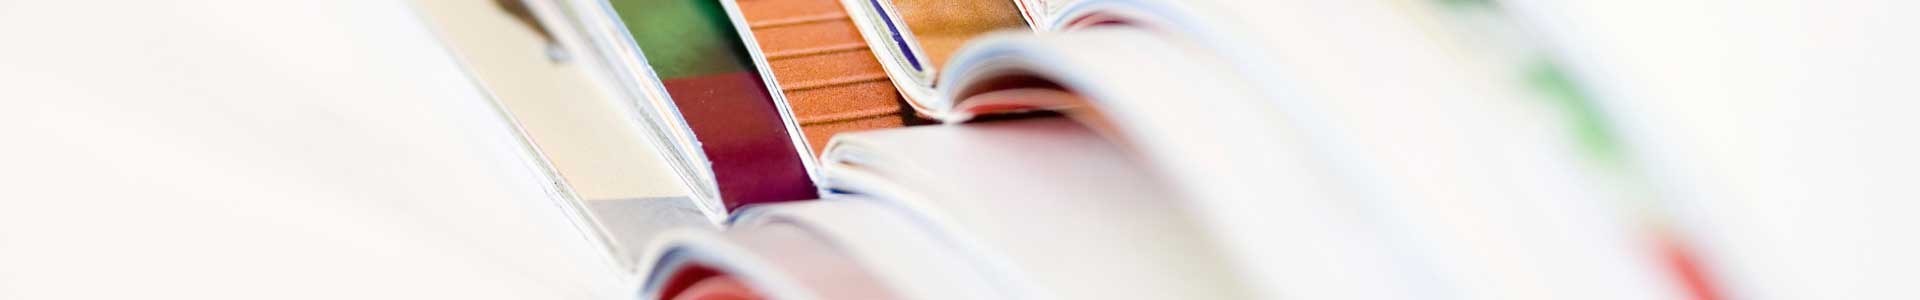 A reference book is flipped open